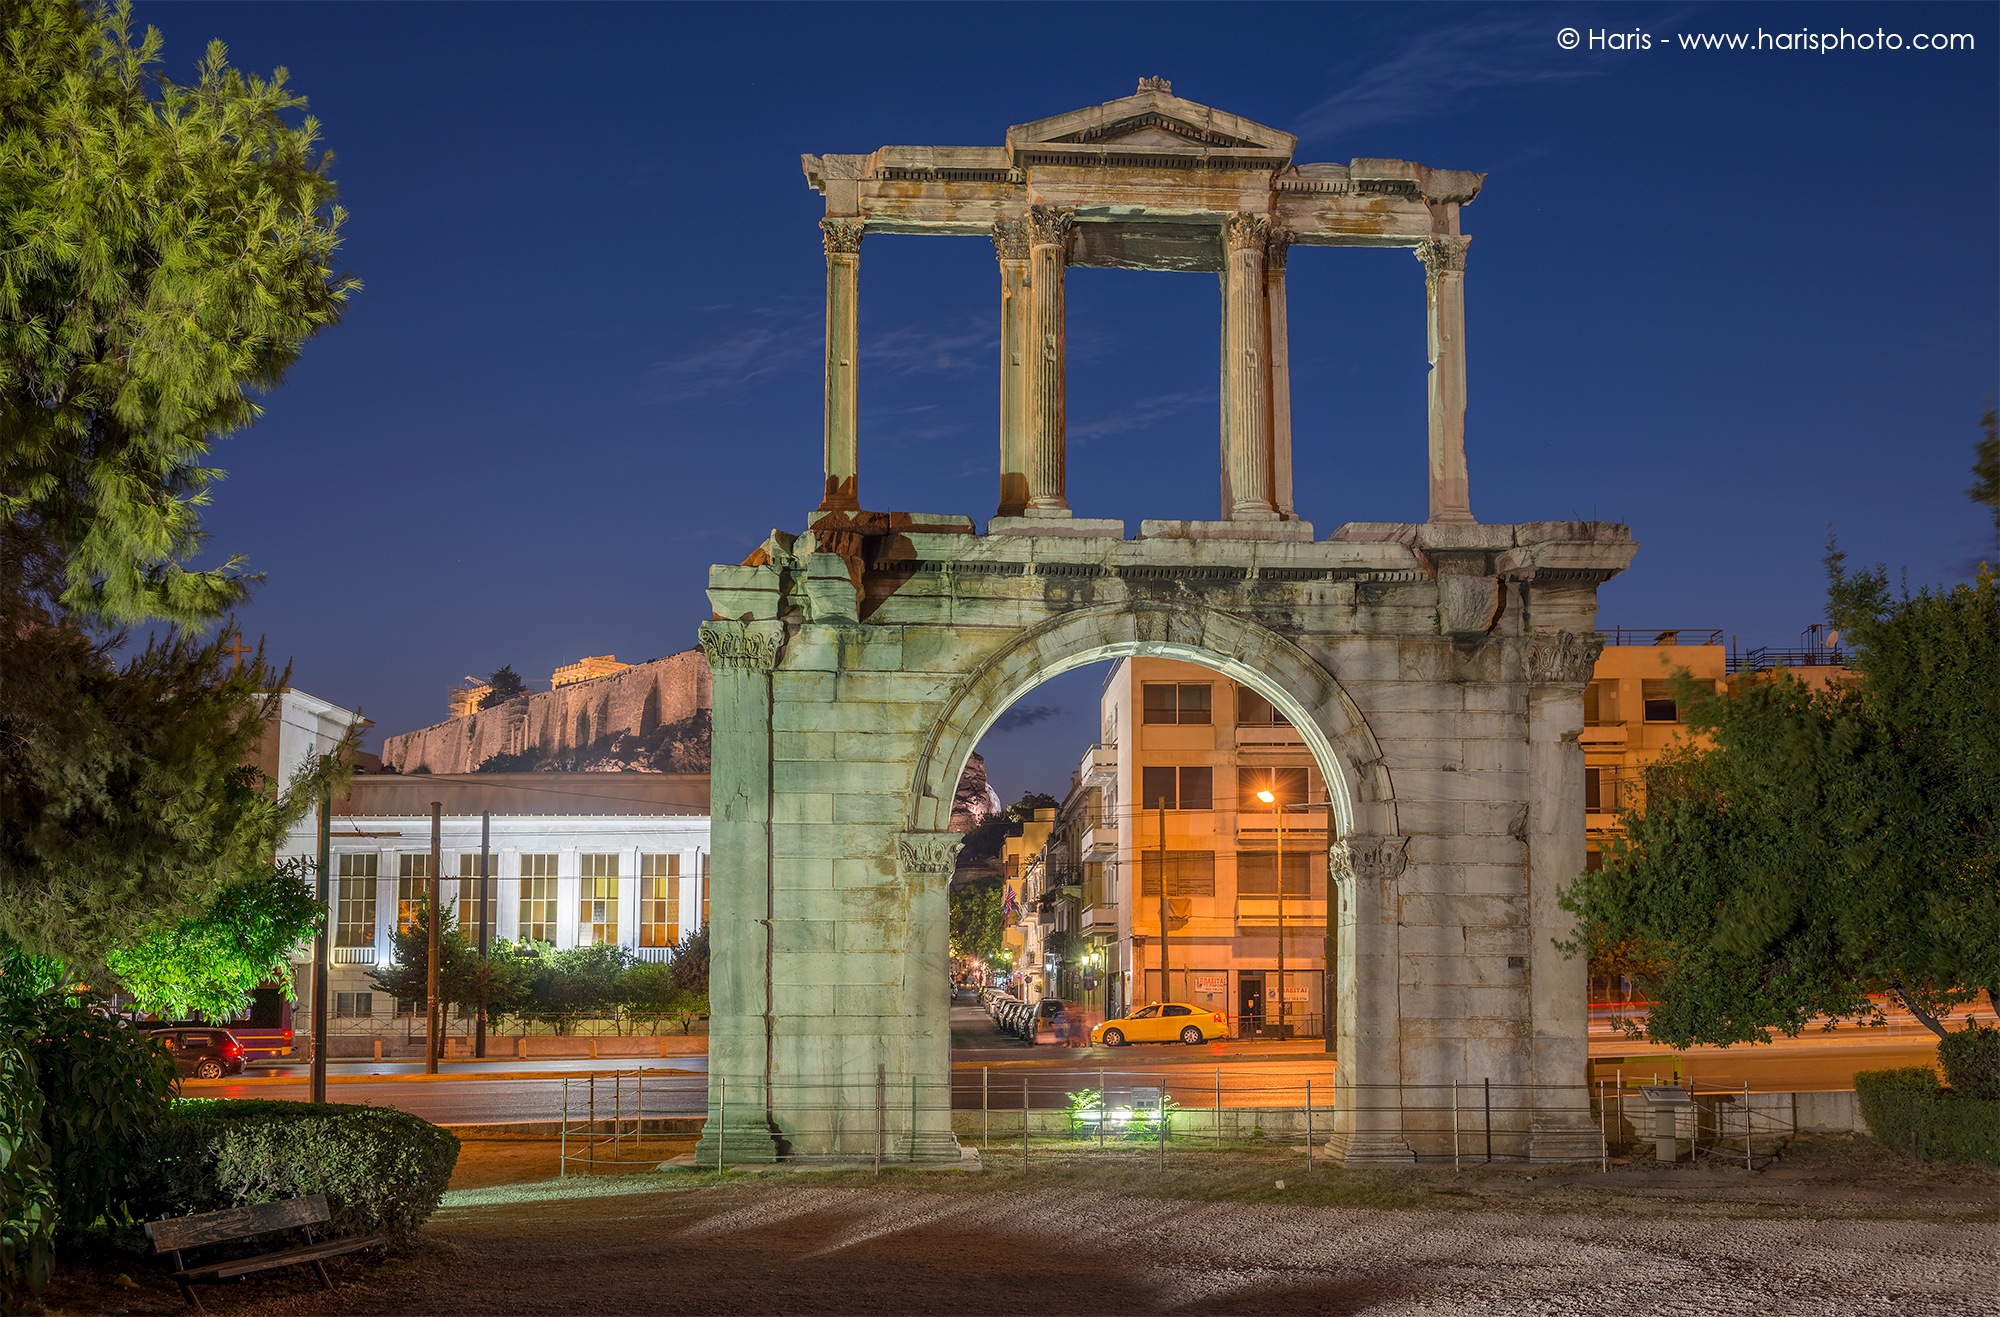 Arch Of Hadrian by Haris Vithoulkas